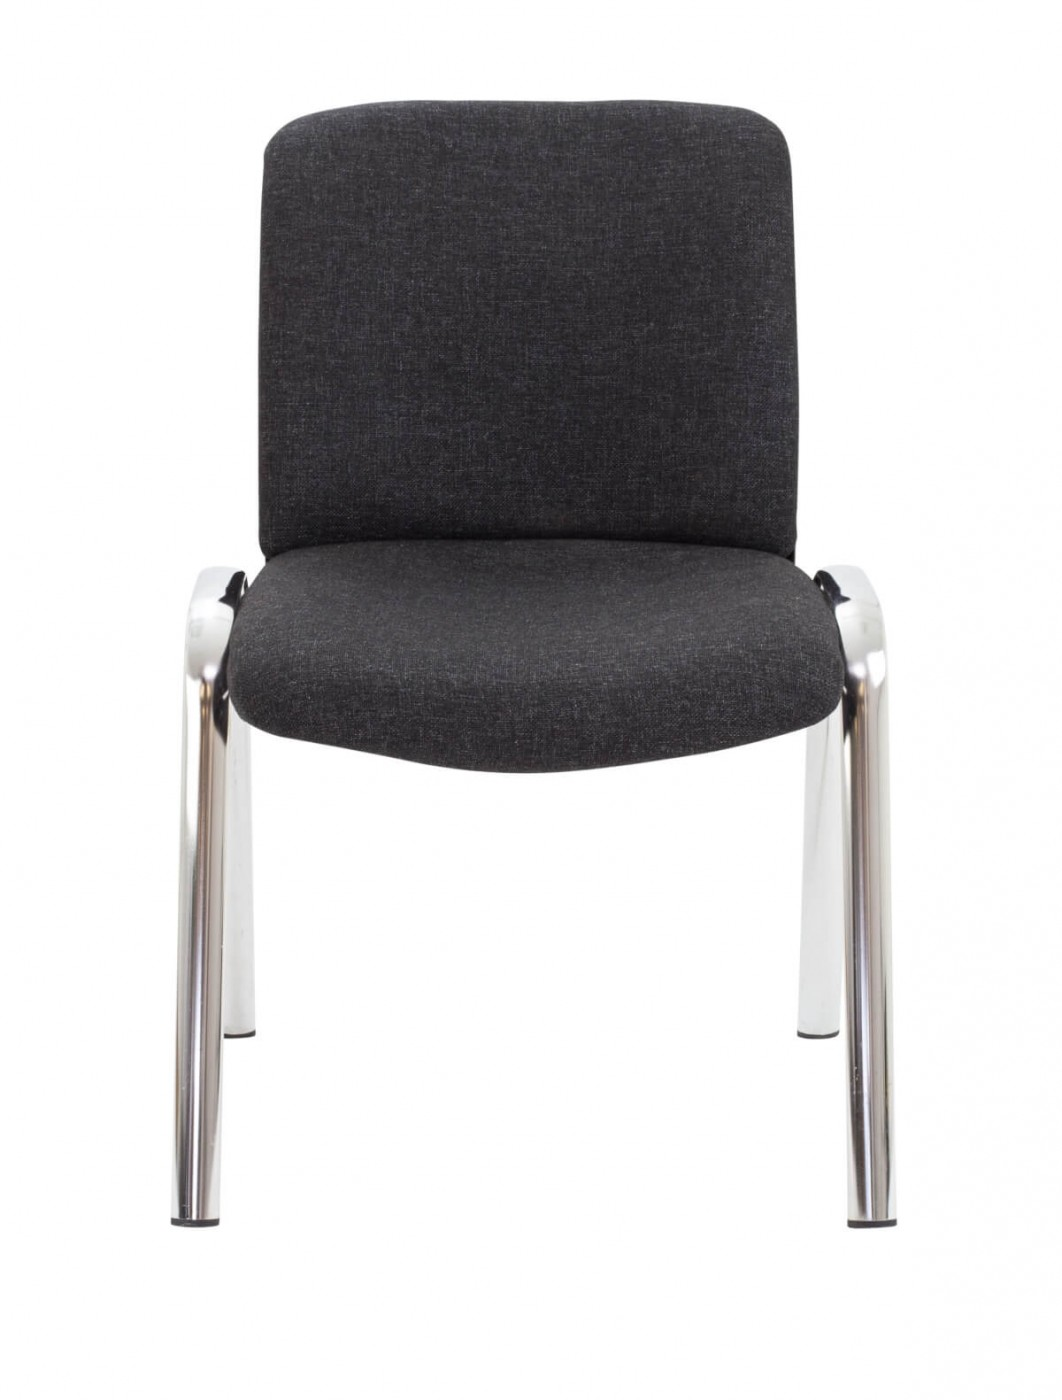 by and conference sale no chairs prouv pin jean chair steel for